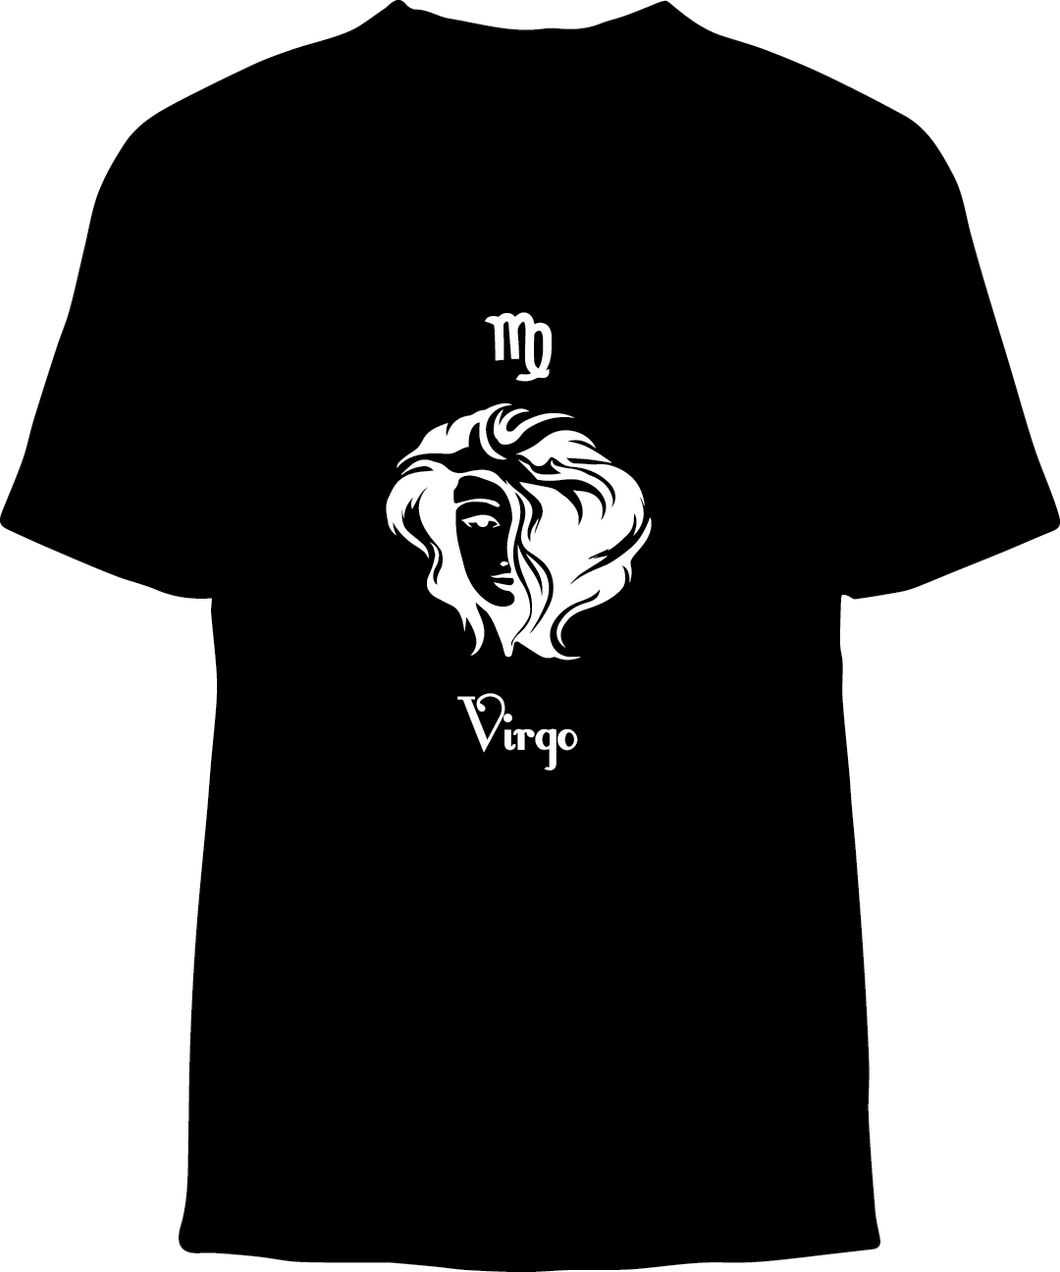 Skelebone Short Sleeve T-shirt, Virgo Aug 23 - Sep 22 Front Print